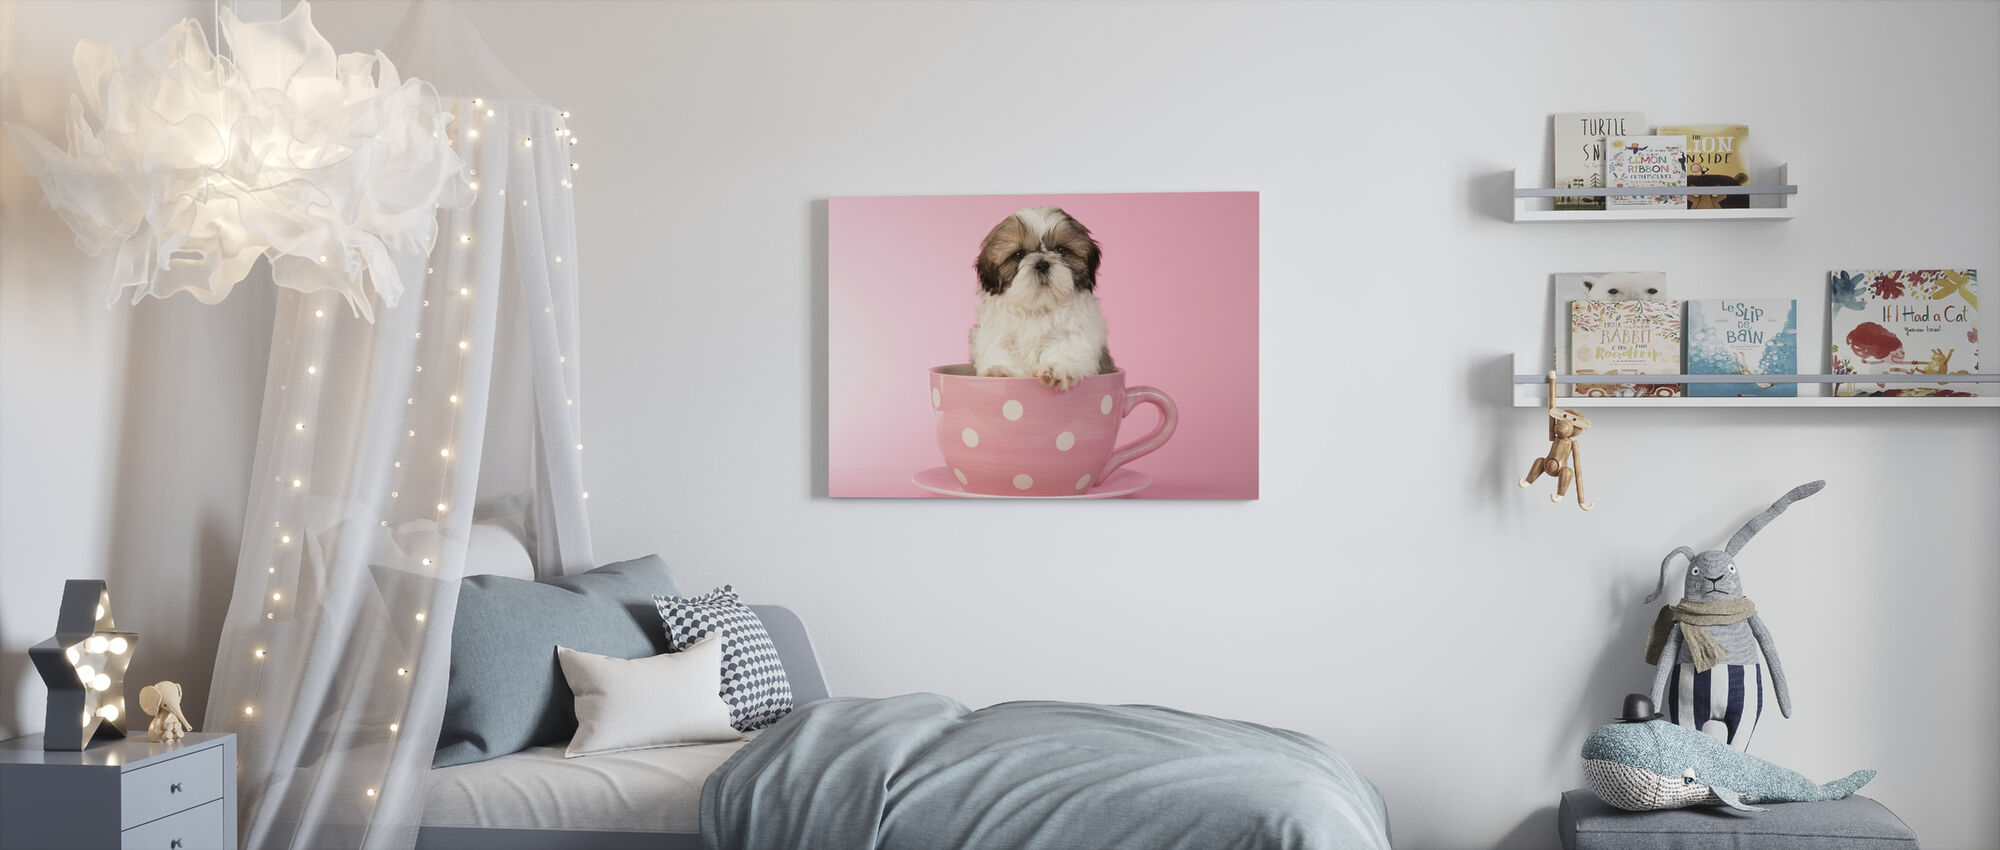 Dog in Cup - Canvas print - Kids Room